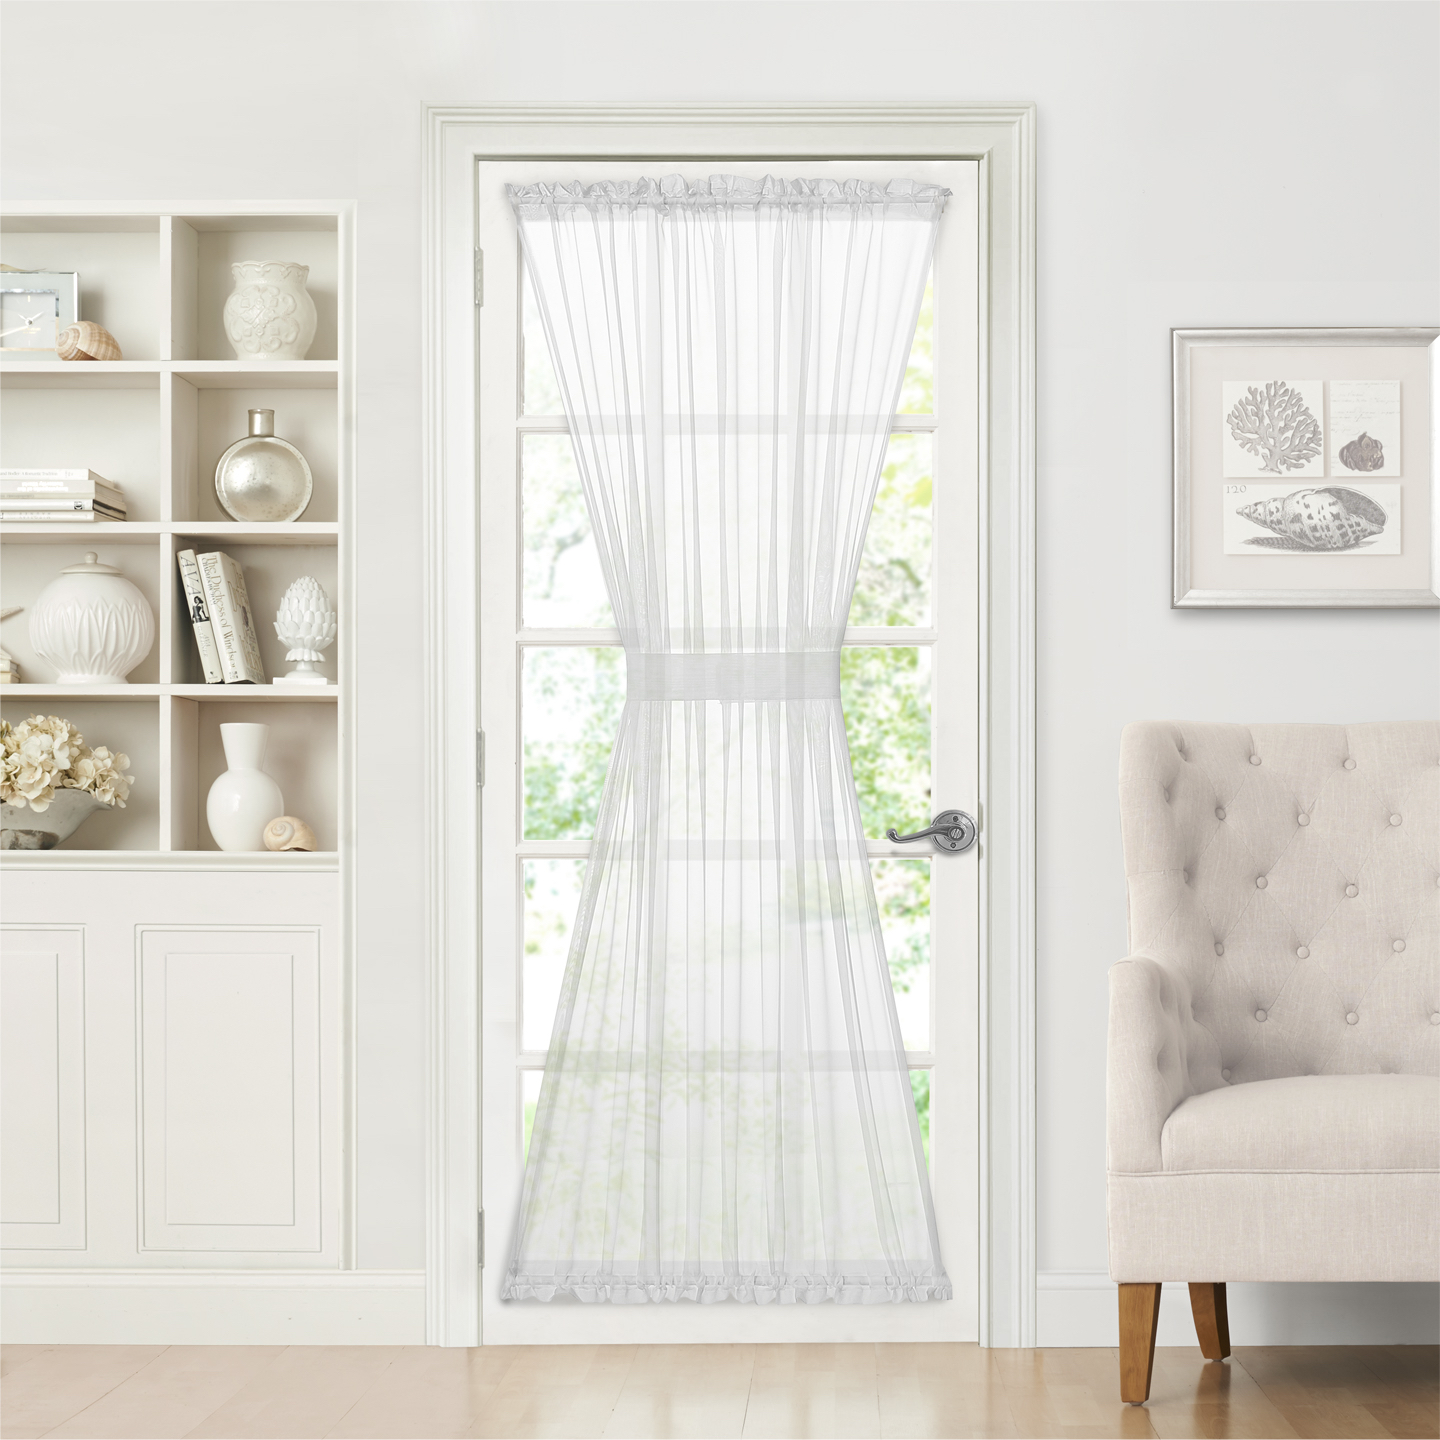 Semi Sheer French Door Curtain With Tieback (White, 72 in.)